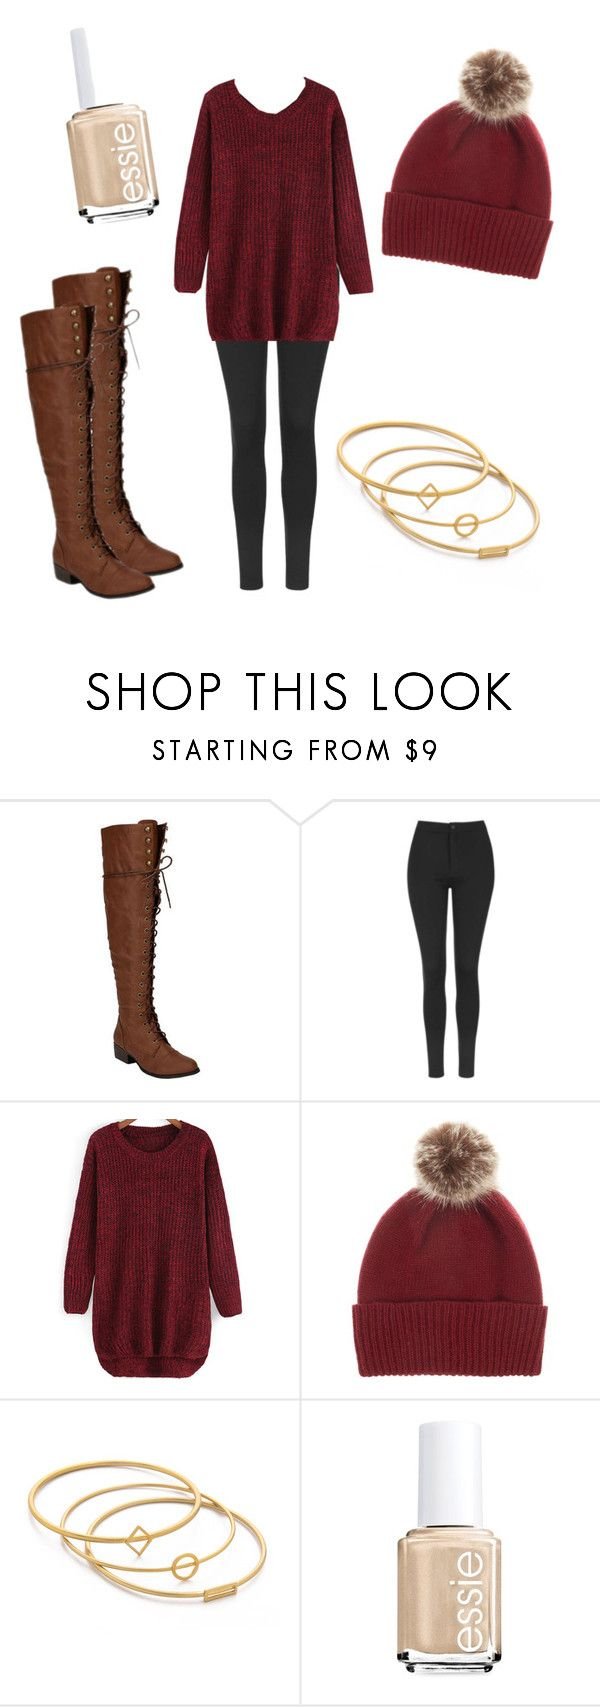 """""""❄️☃❄️☃❄️"""" by lydiaviolet ❤ liked on Polyvore featuring Beston, Topshop, Helen Moore, Madewell and Essie"""